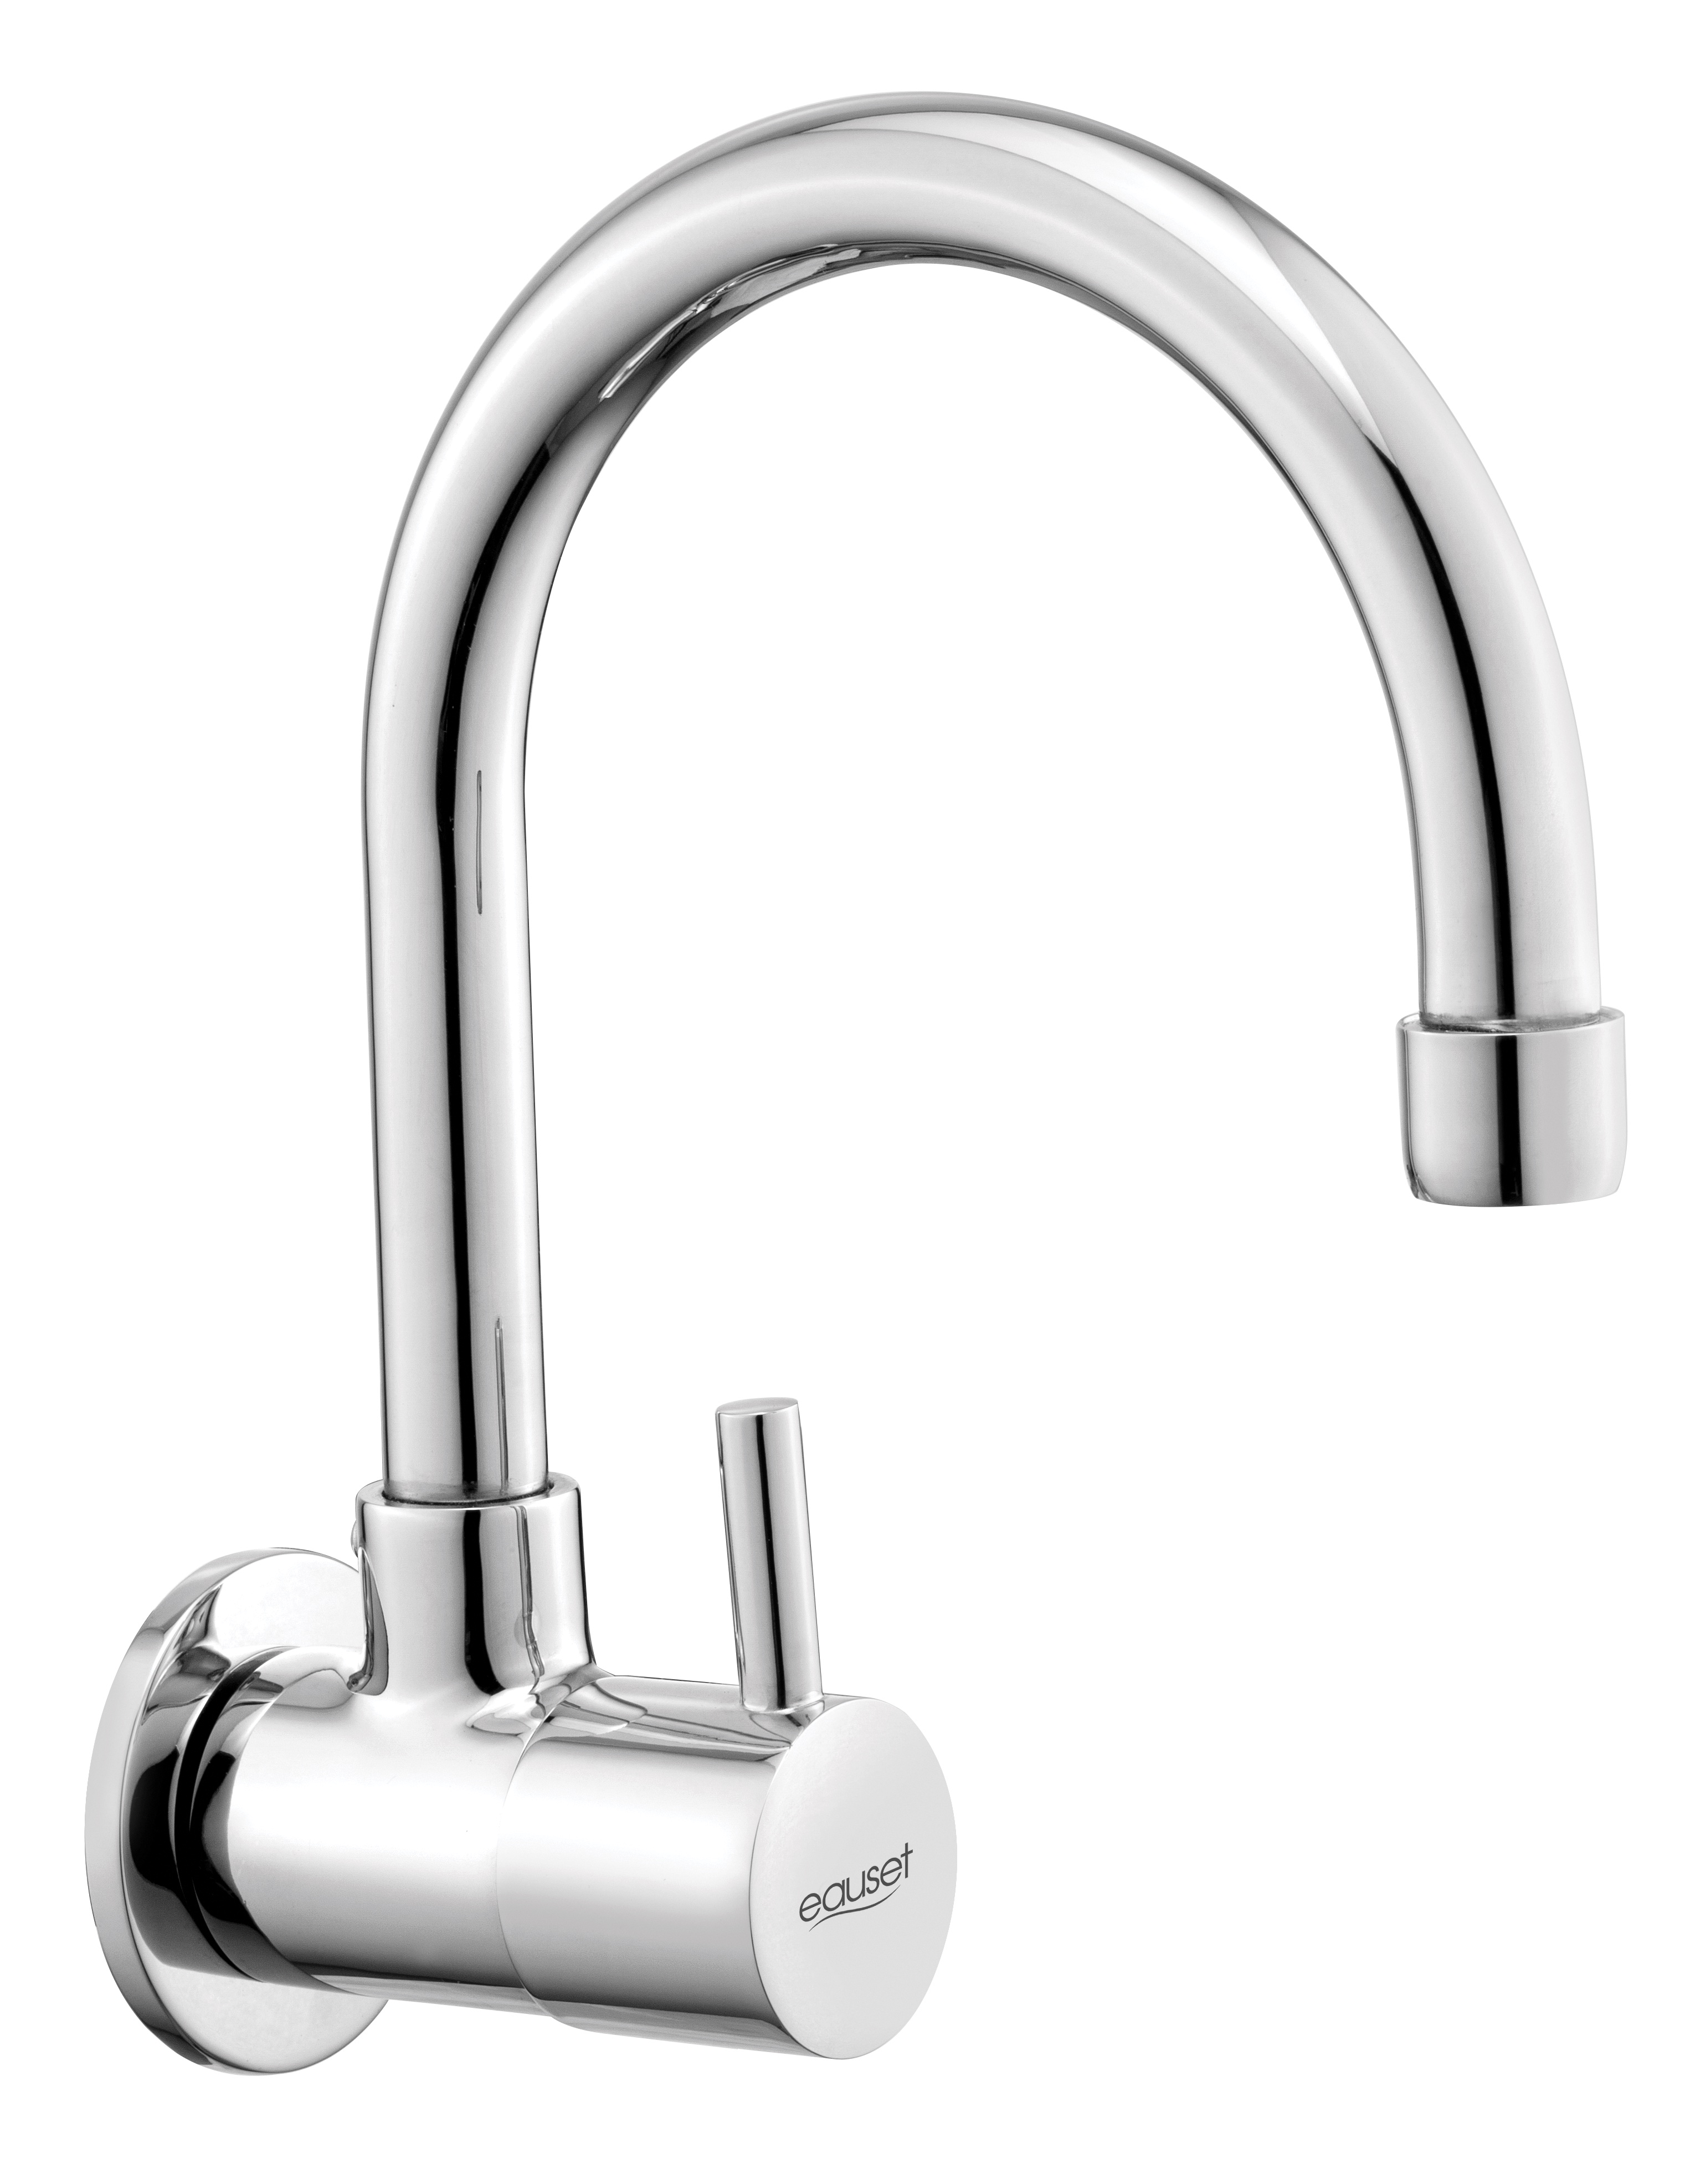 Sink Cock Wall Mounted With Swinging Spout (Small) With Wall Flange